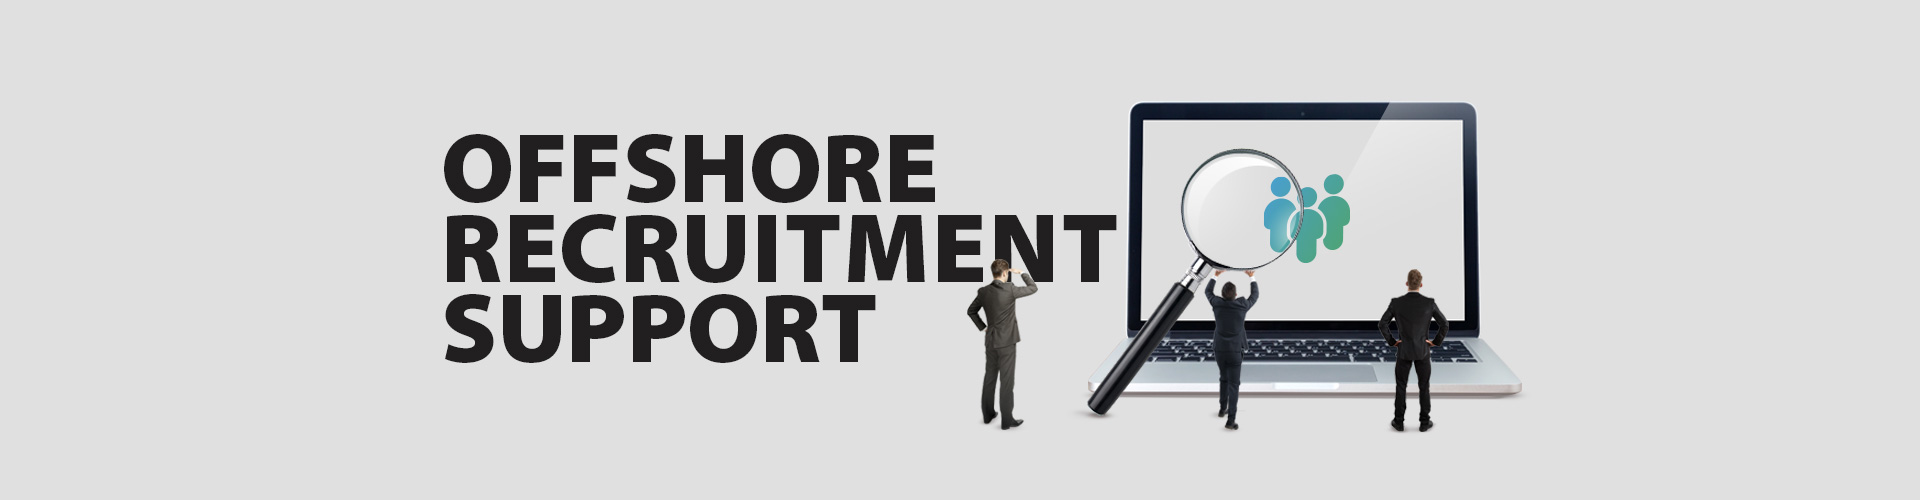 Offshore Recruitment Support - Vanator